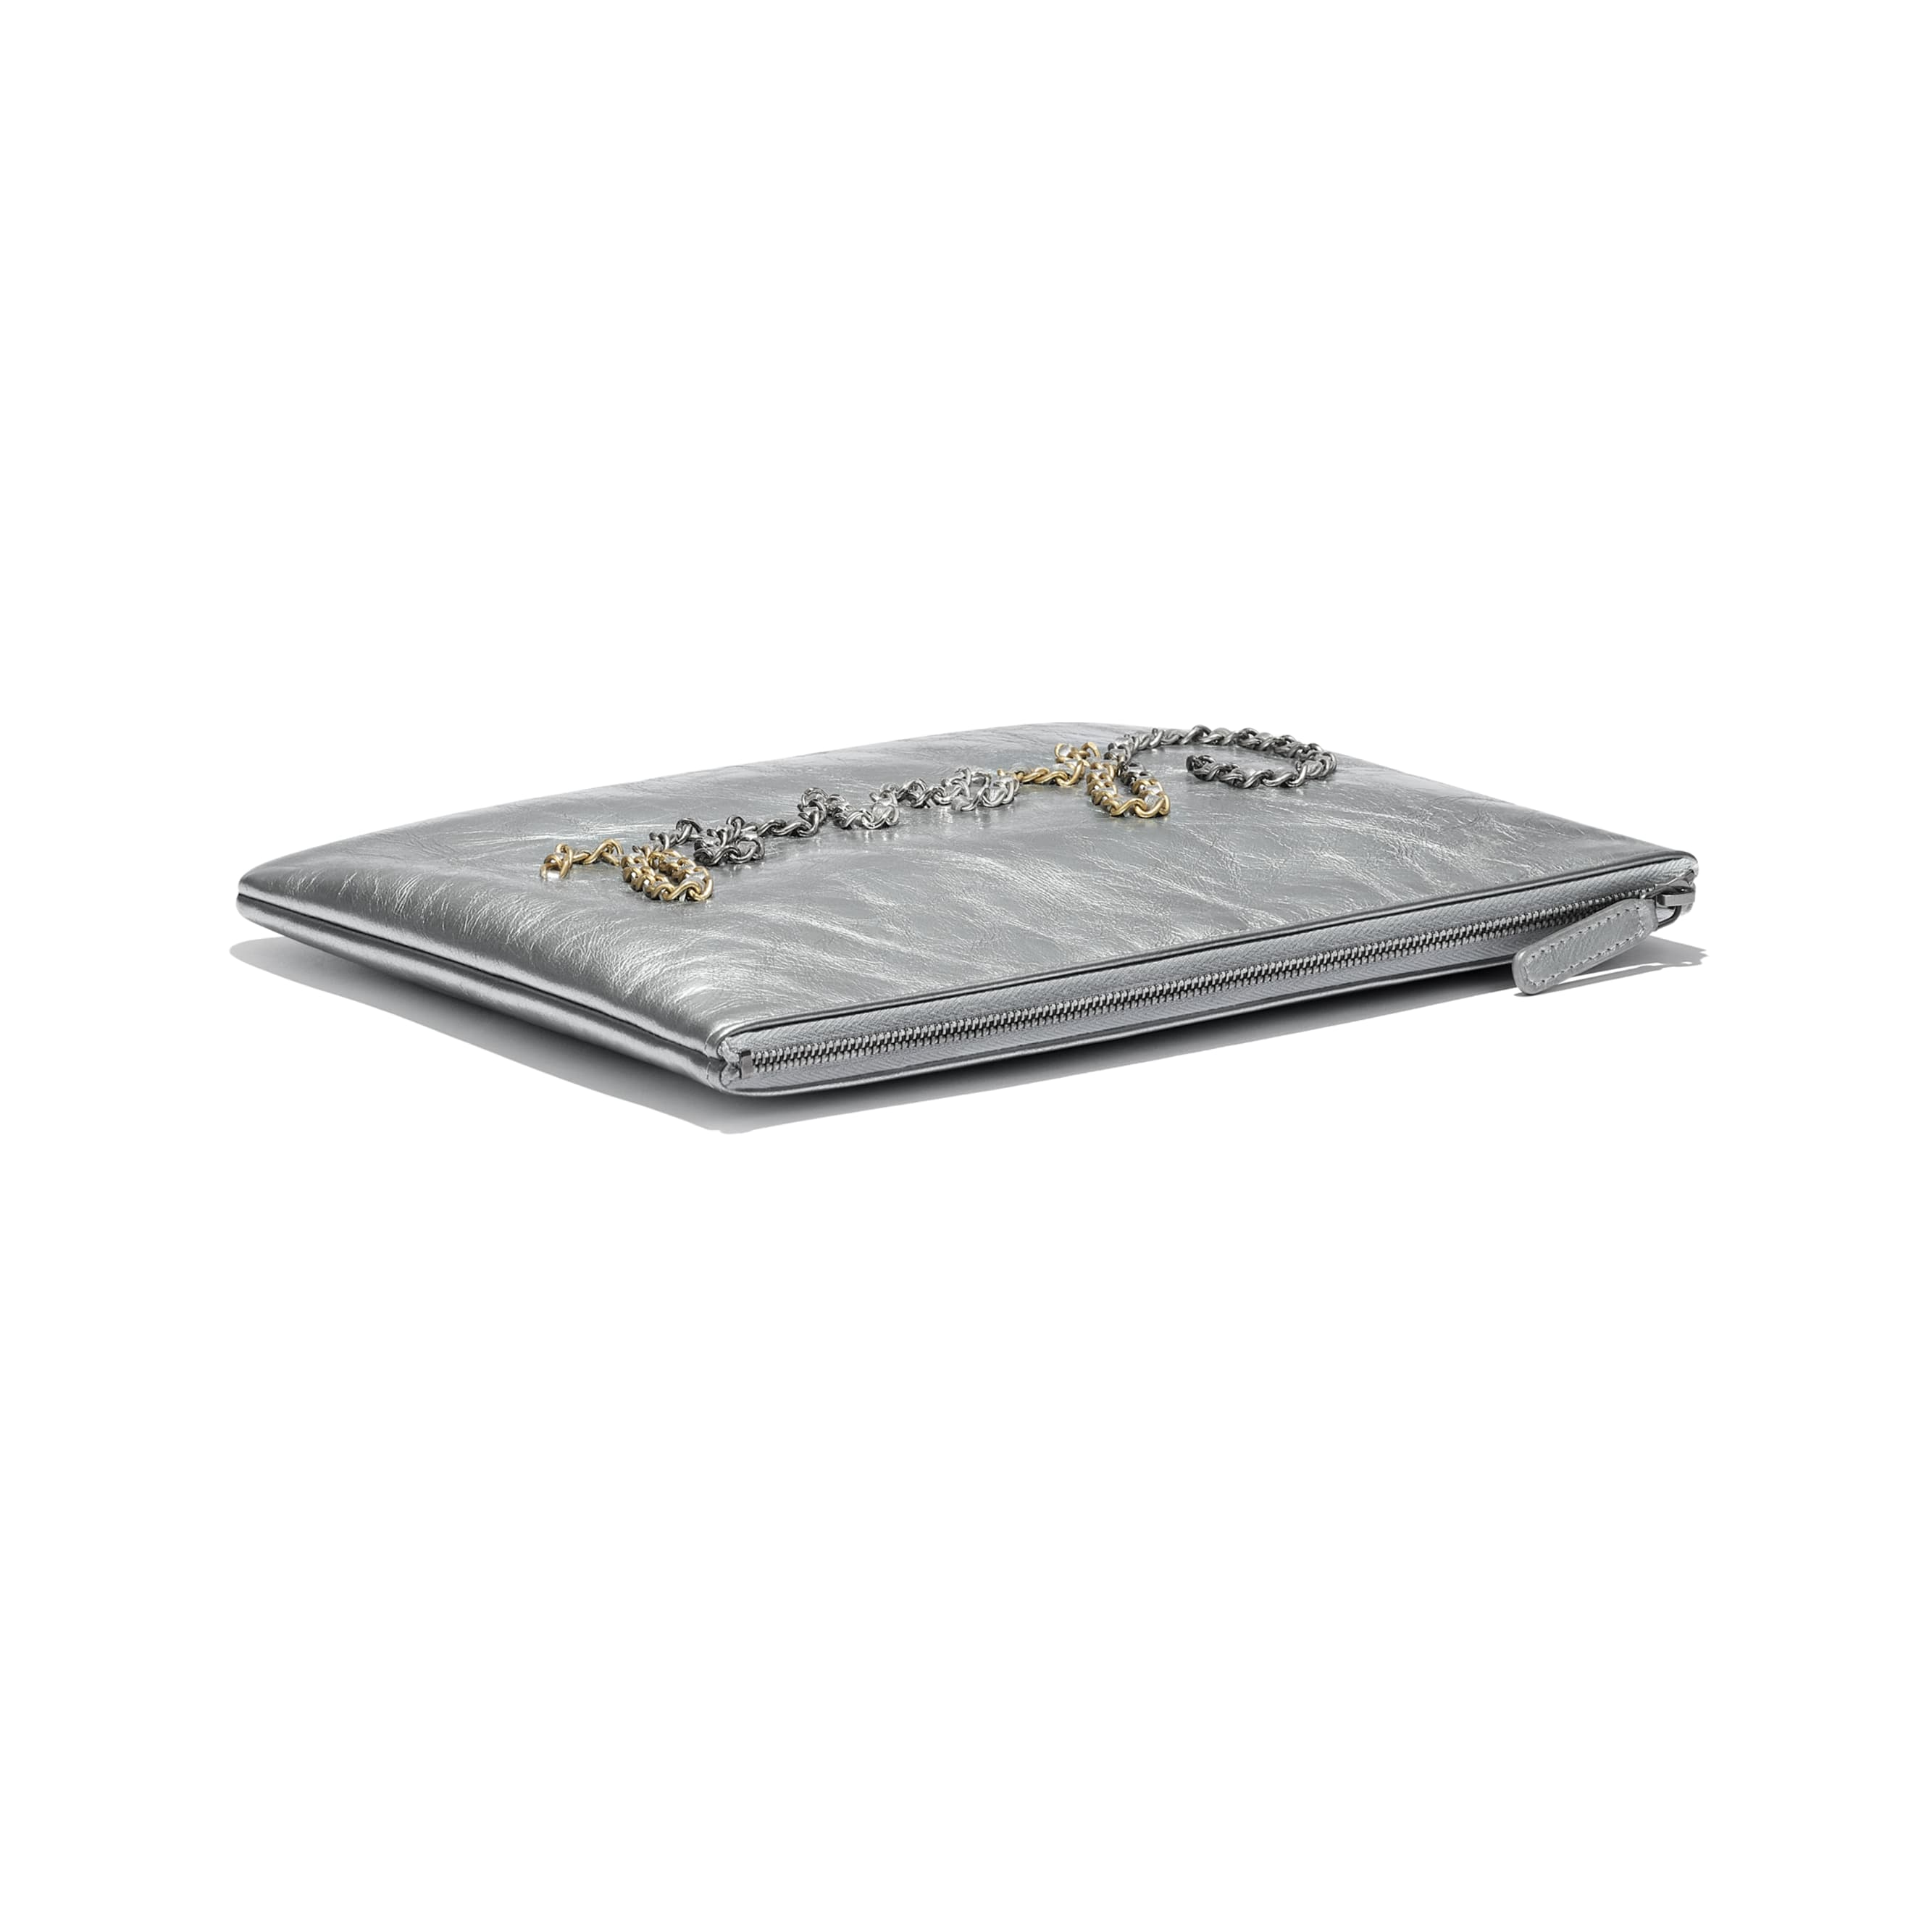 Pouch - Silver - Metallic Crumpled Calfskin, Gold-Tone, Silver-Tone & Ruthenium-Finish Metal - Extra view - see standard sized version